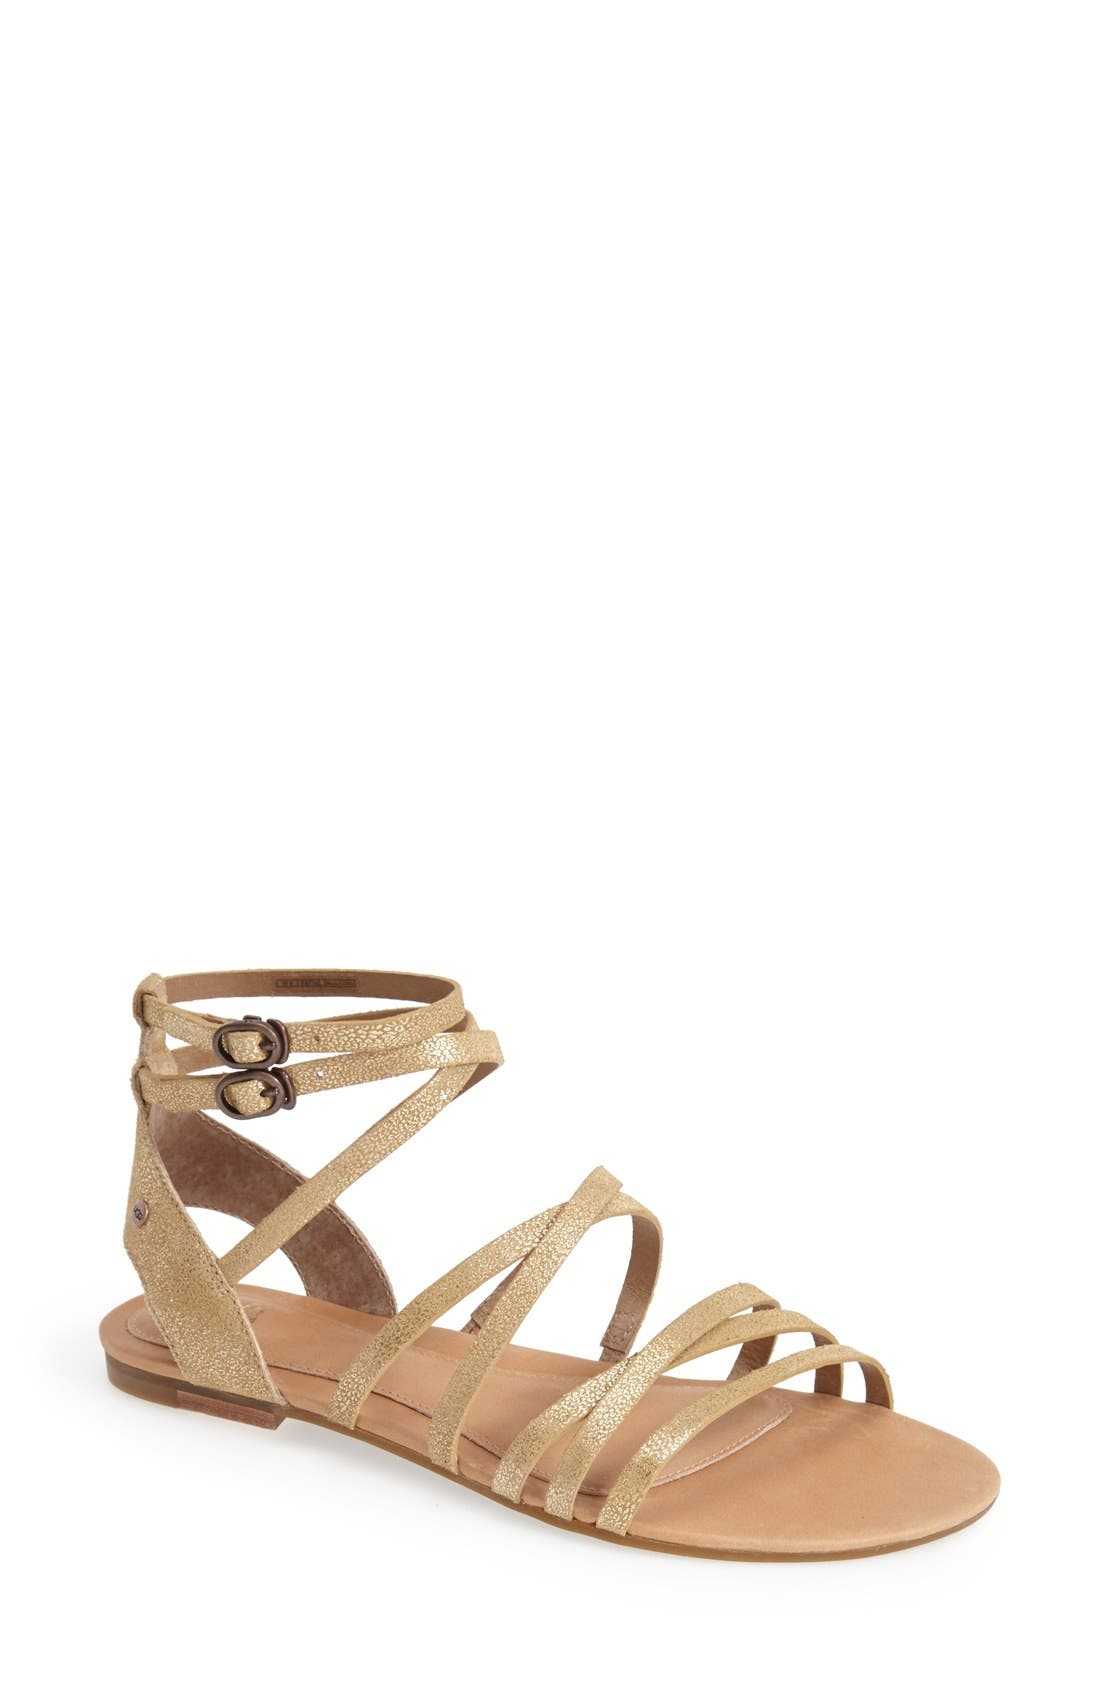 Alternate Image 1 Selected - UGG® Australia 'Devie' Metallic Leather Sandal (Women)